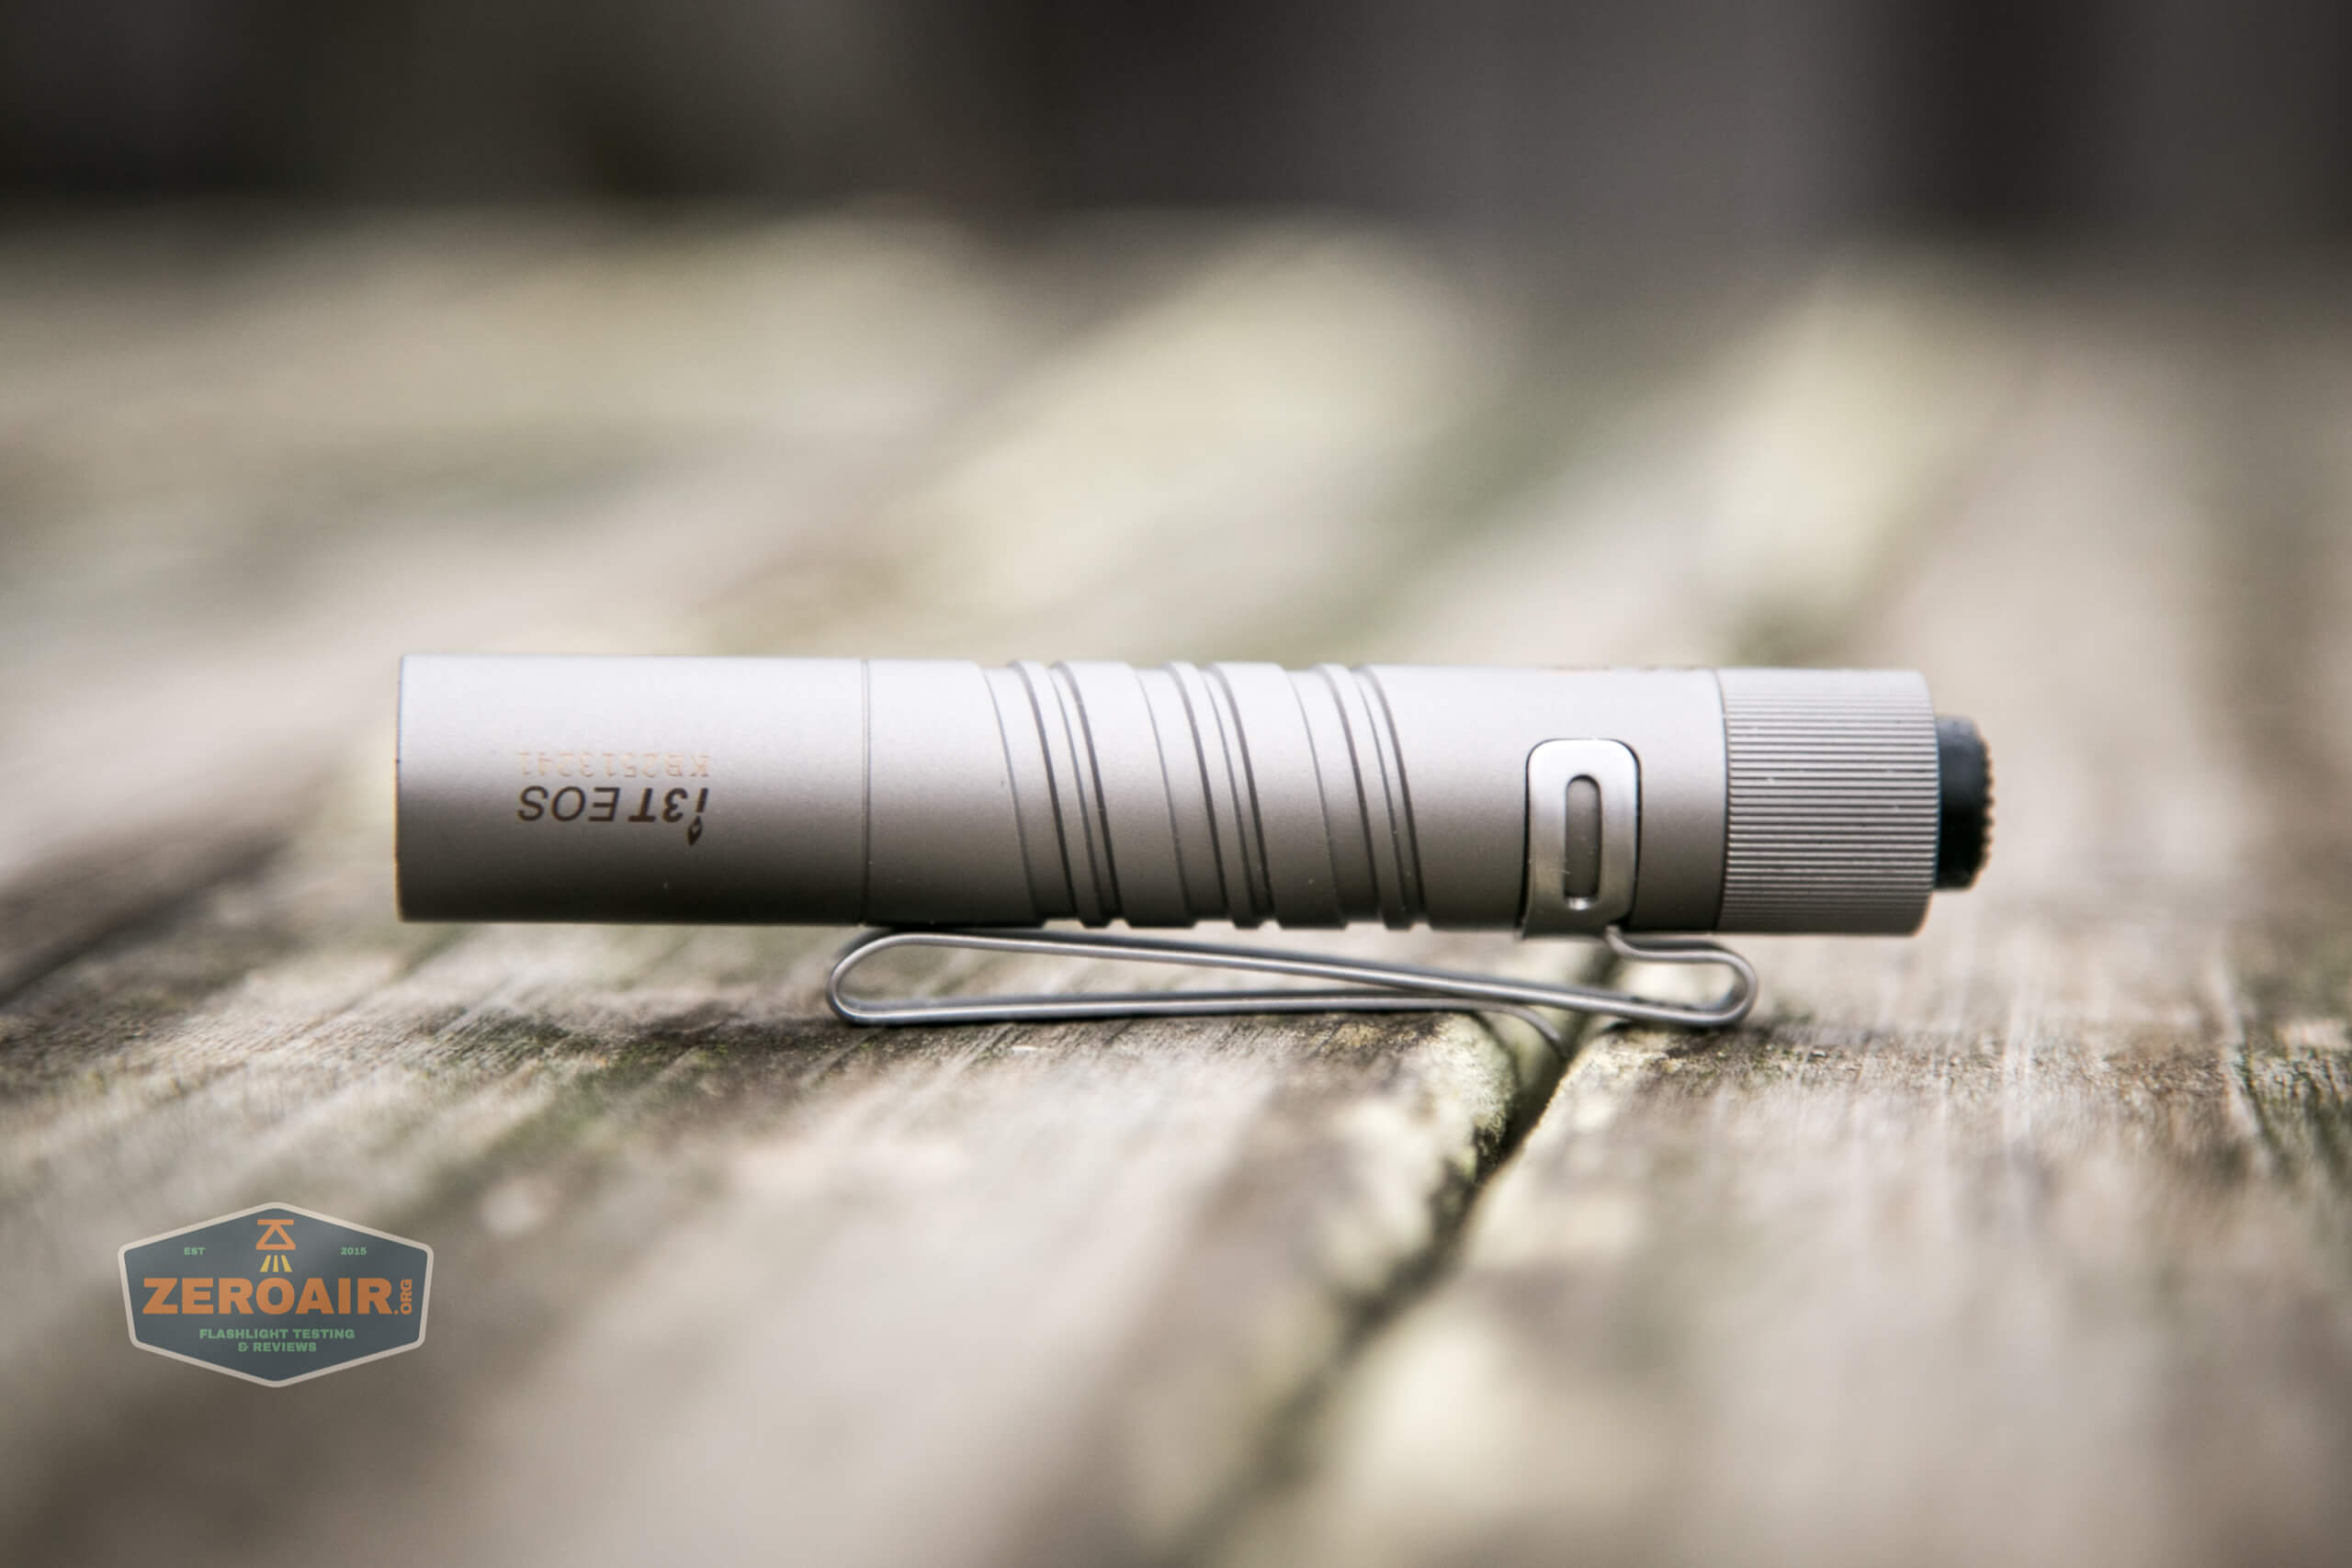 olight i3t eos titanium aaa flashlight upside down logo